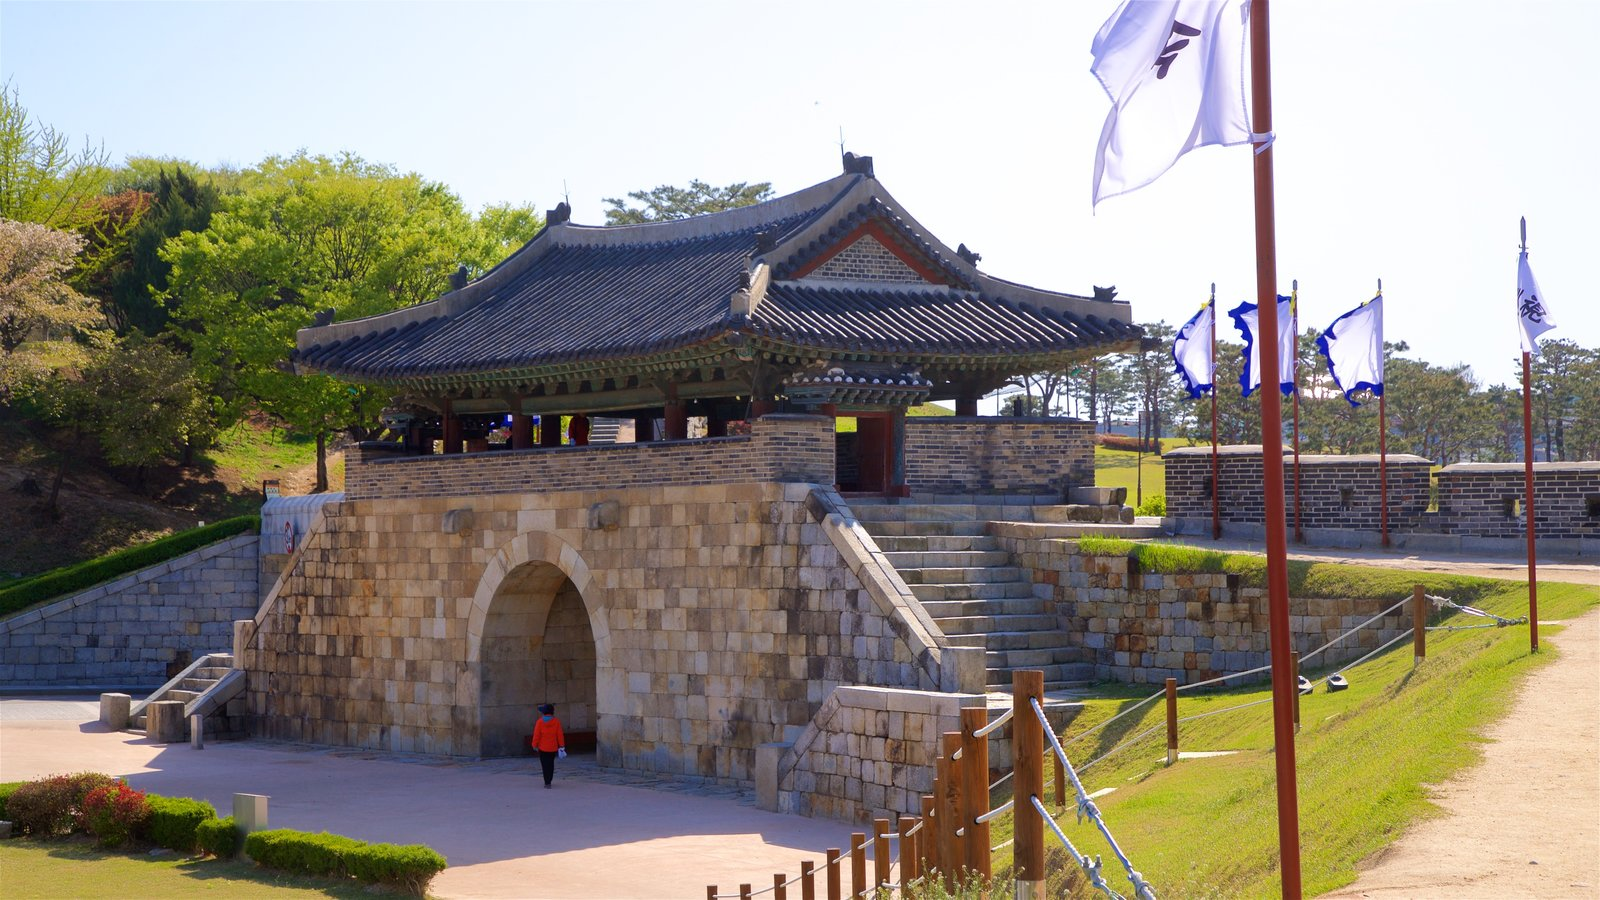 Hwaseomun Gate which includes a garden and heritage architecture